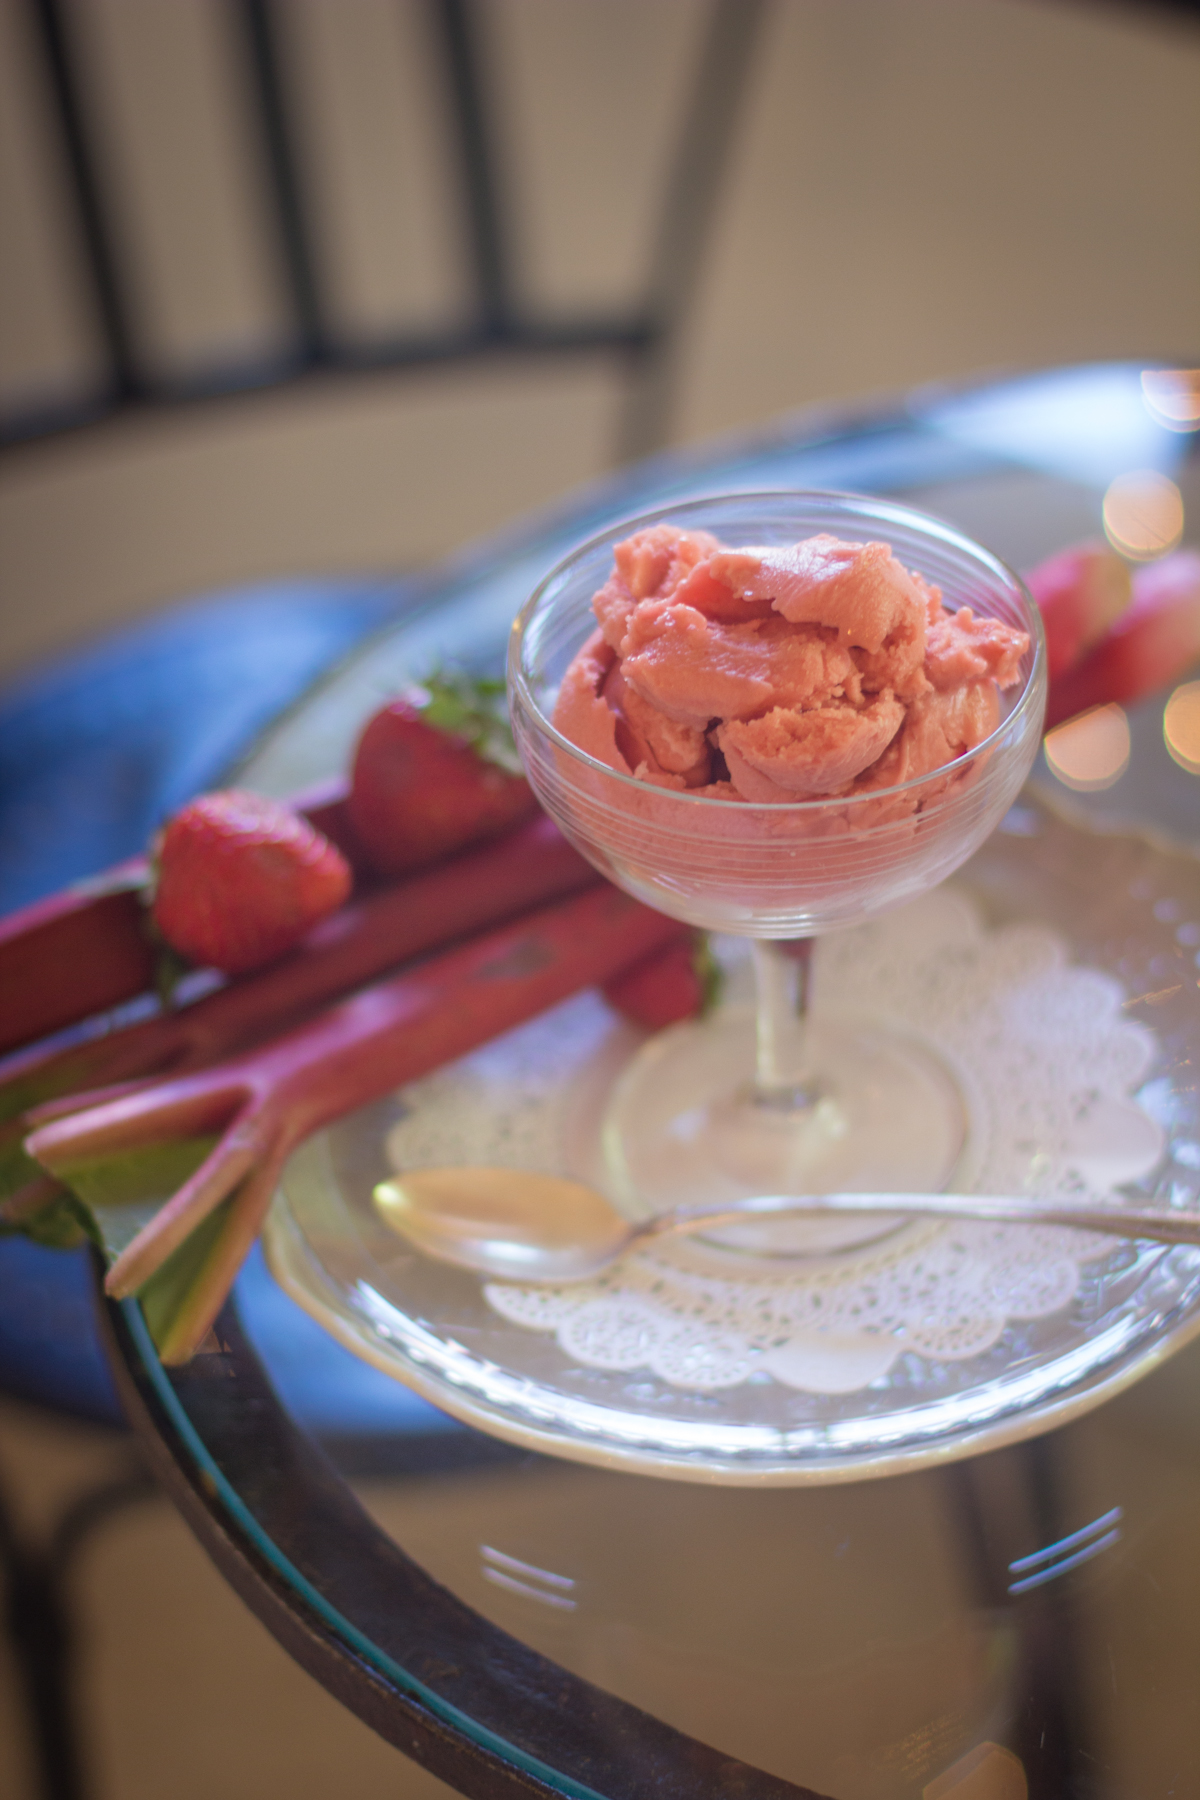 SPECIALTYICE CREAMS - Handmade with local fruit, veggies and spices.